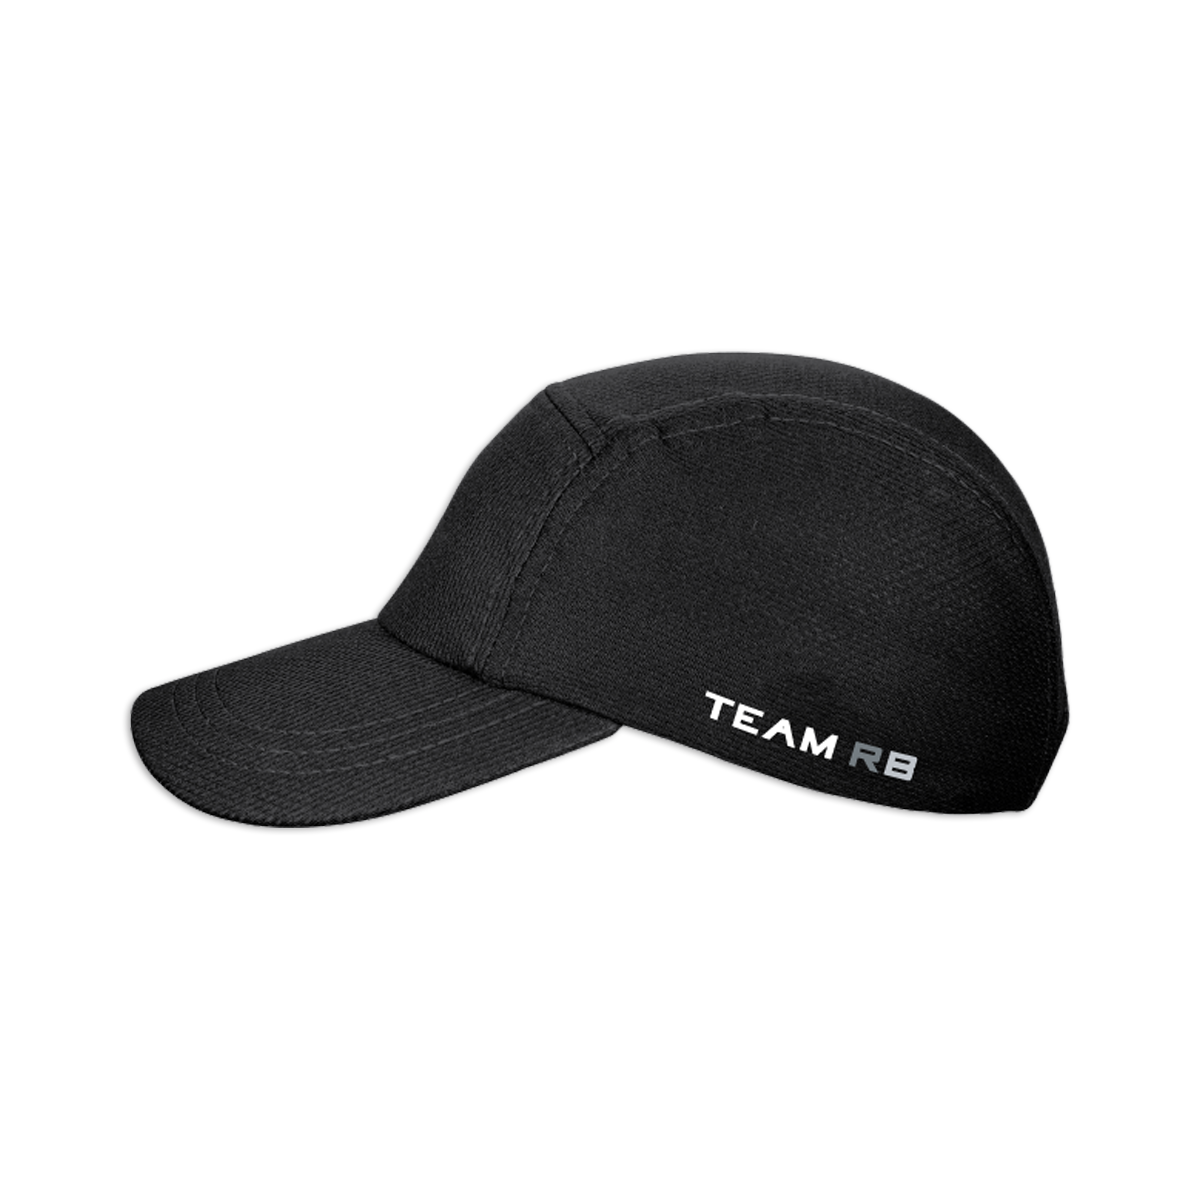 RB Training Cap left